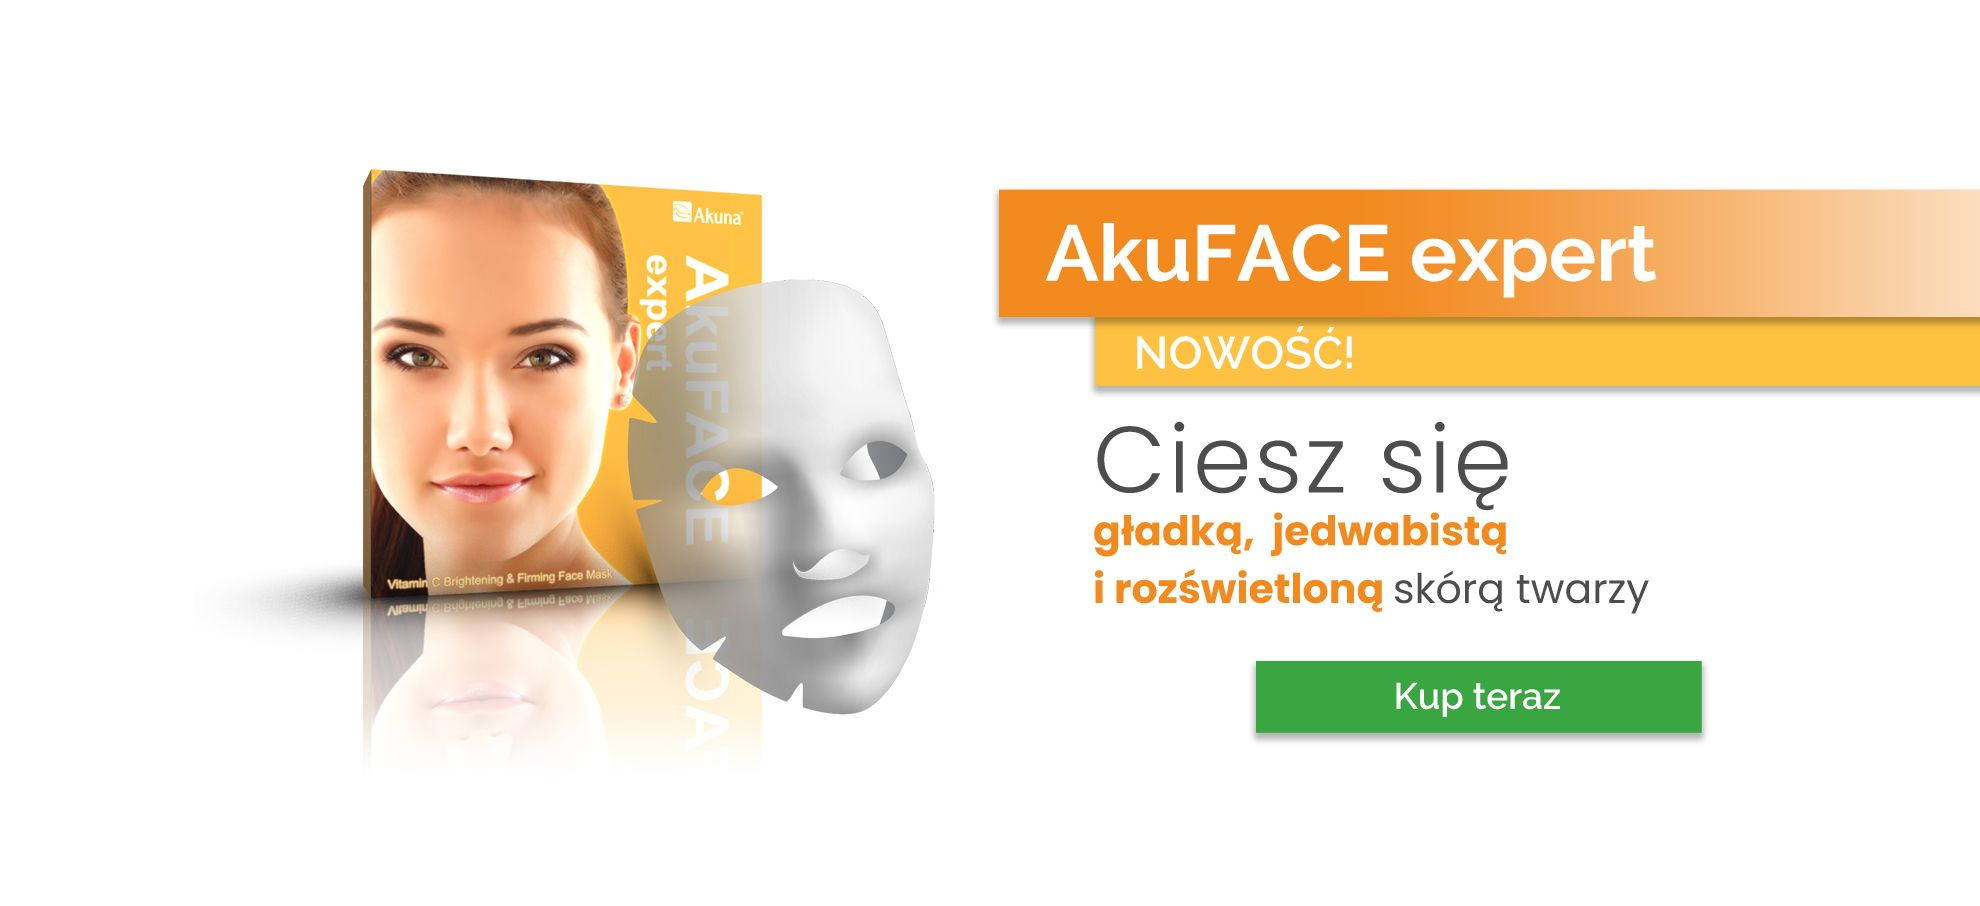 AkuFACE expert